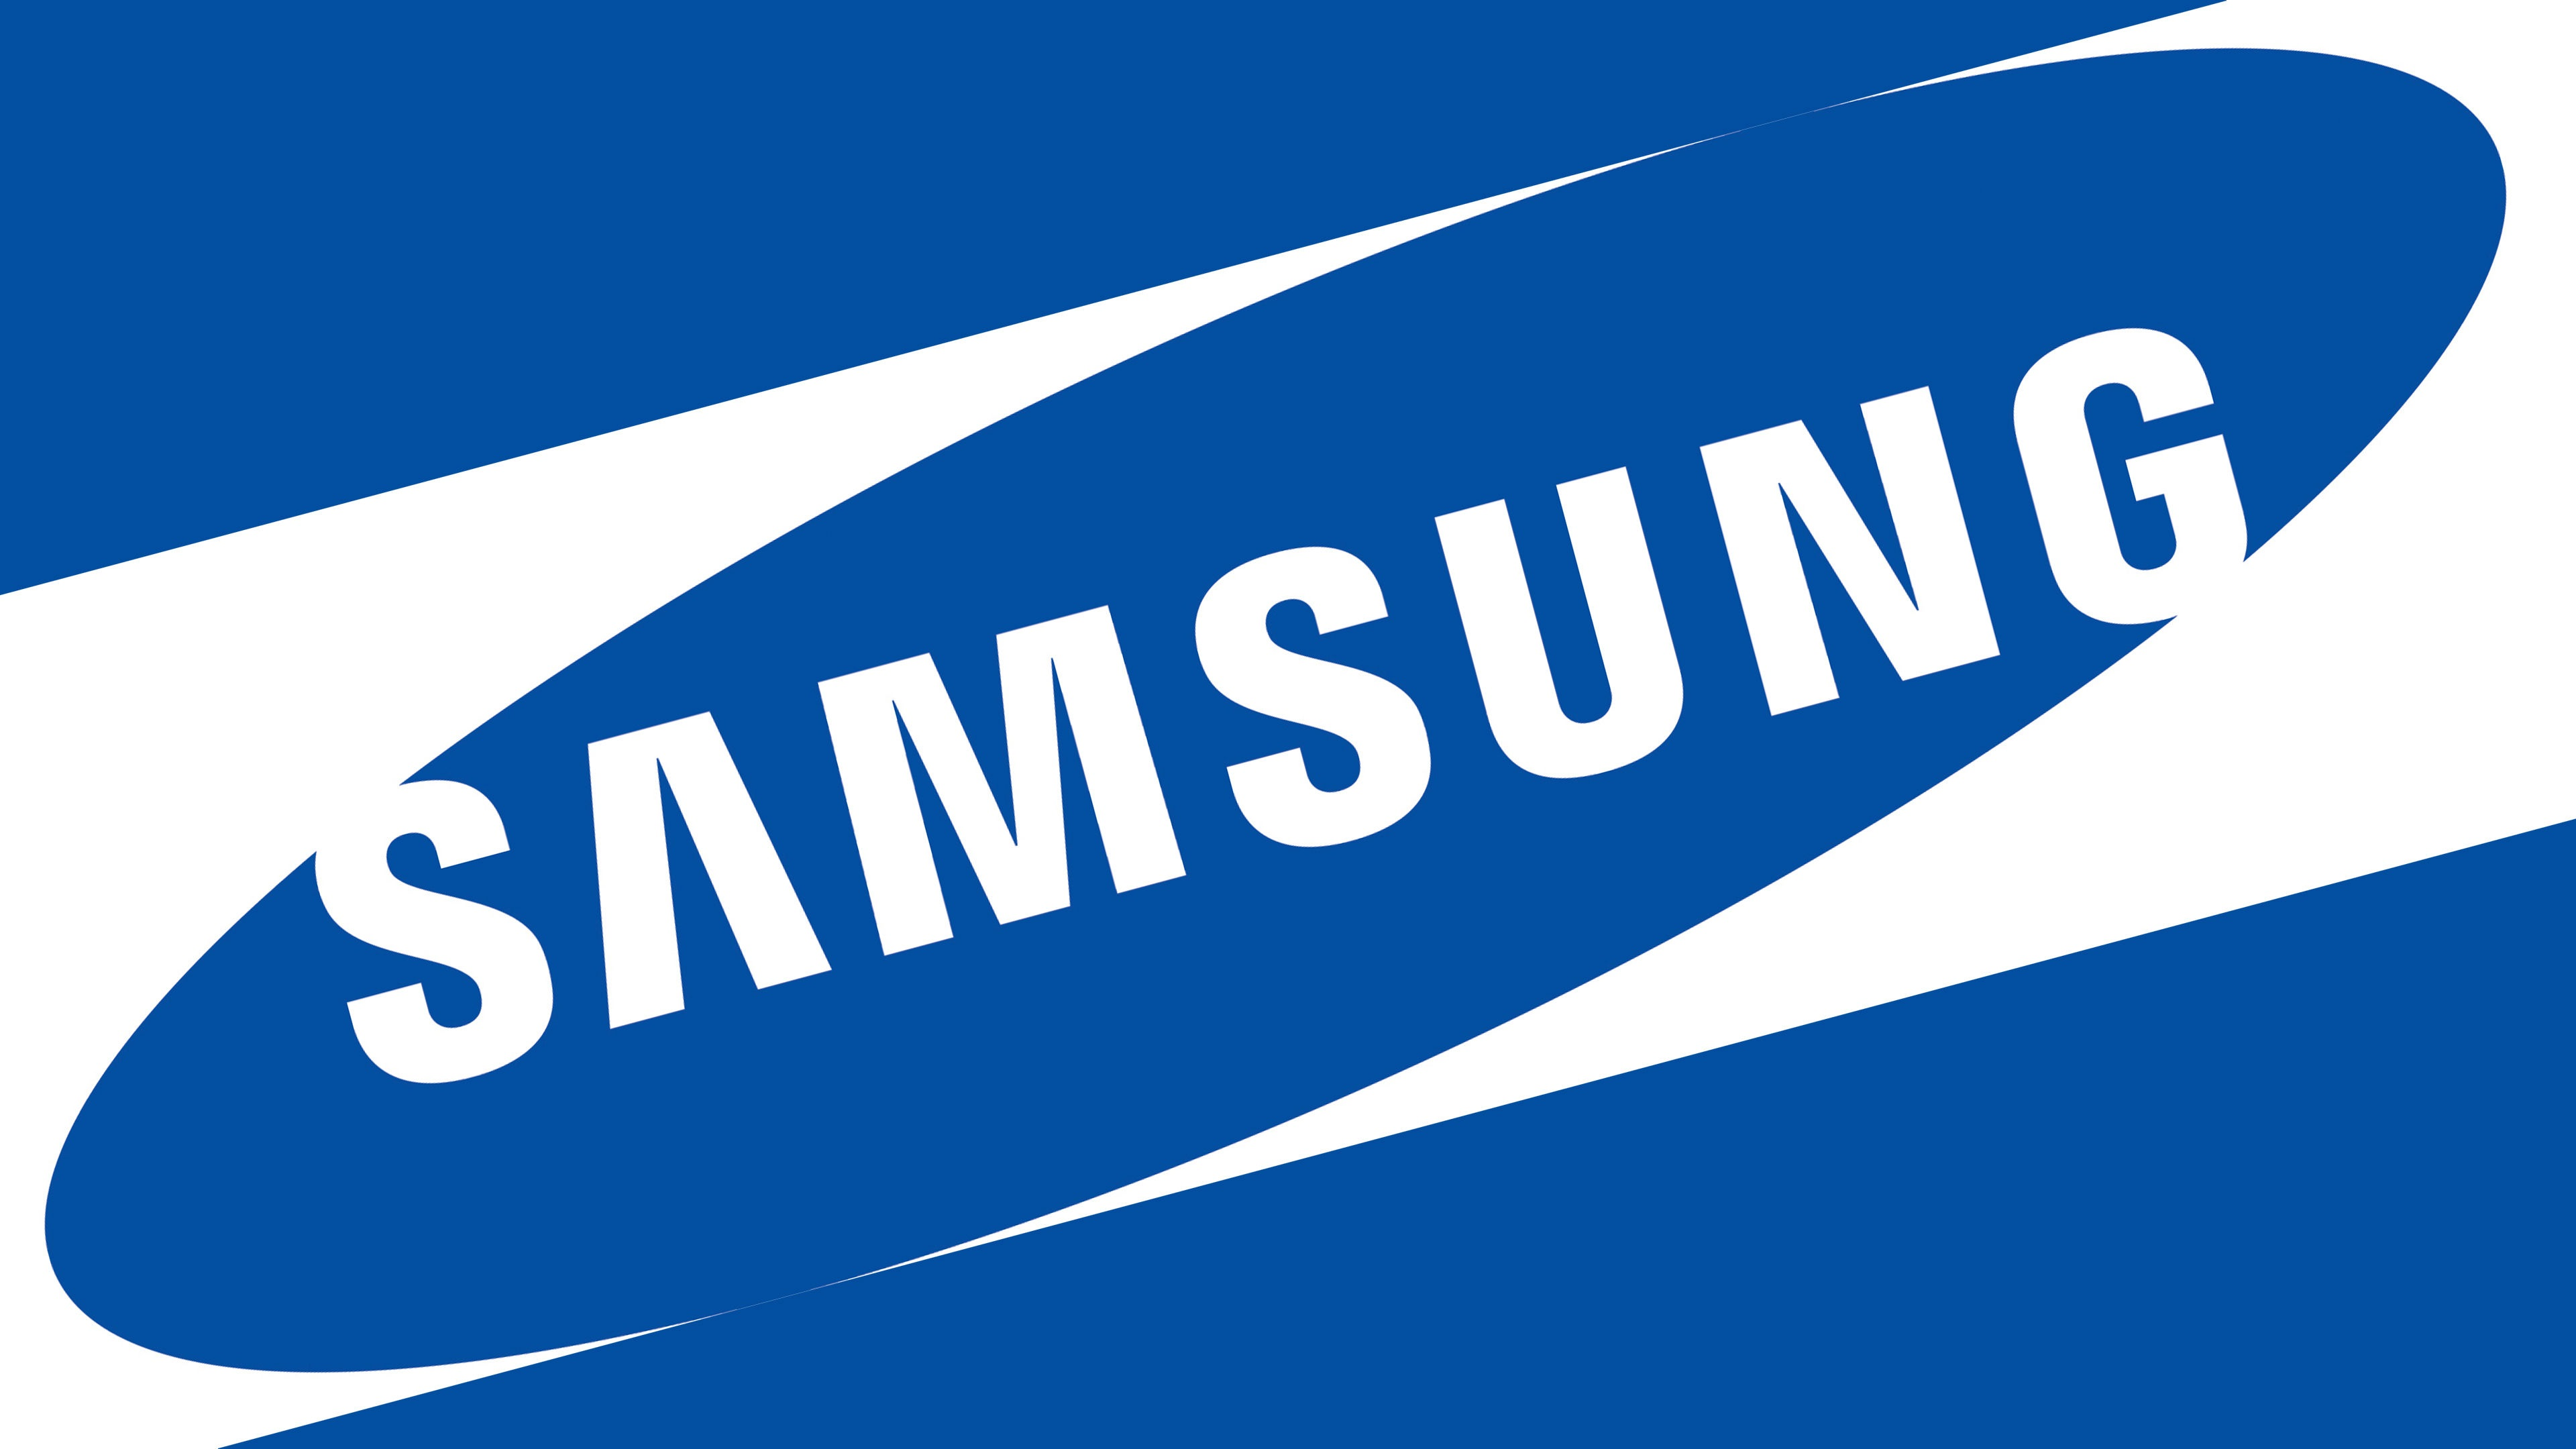 Wallpaper Samsung Logo 3840x2160 Uhd 4k Picture Image